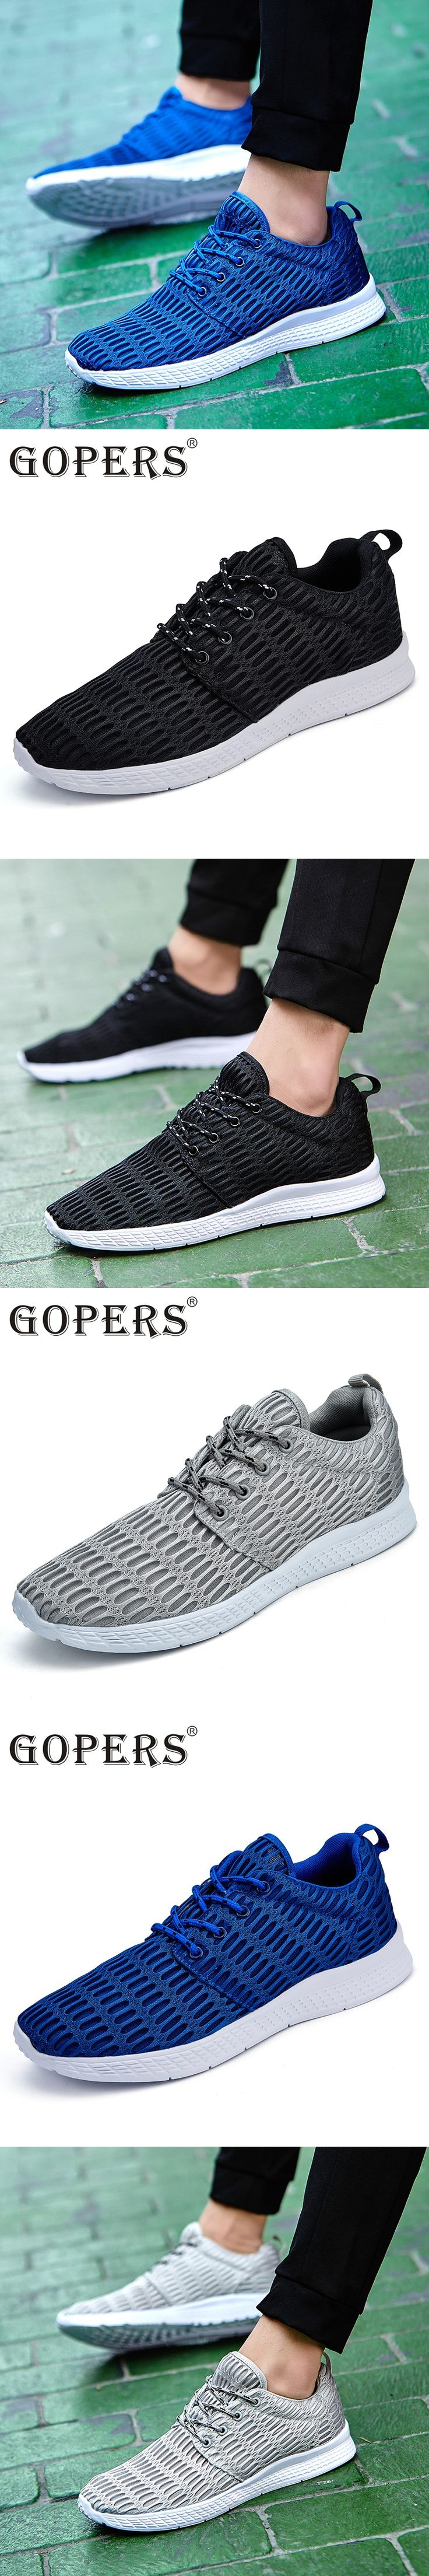 2017 Mesh Breathable Mens Casual Shoes 2017 Summer Hot Sale Boat Shoes Men Krasovki Comfortable Soft Male Shoes Chaussure Homme